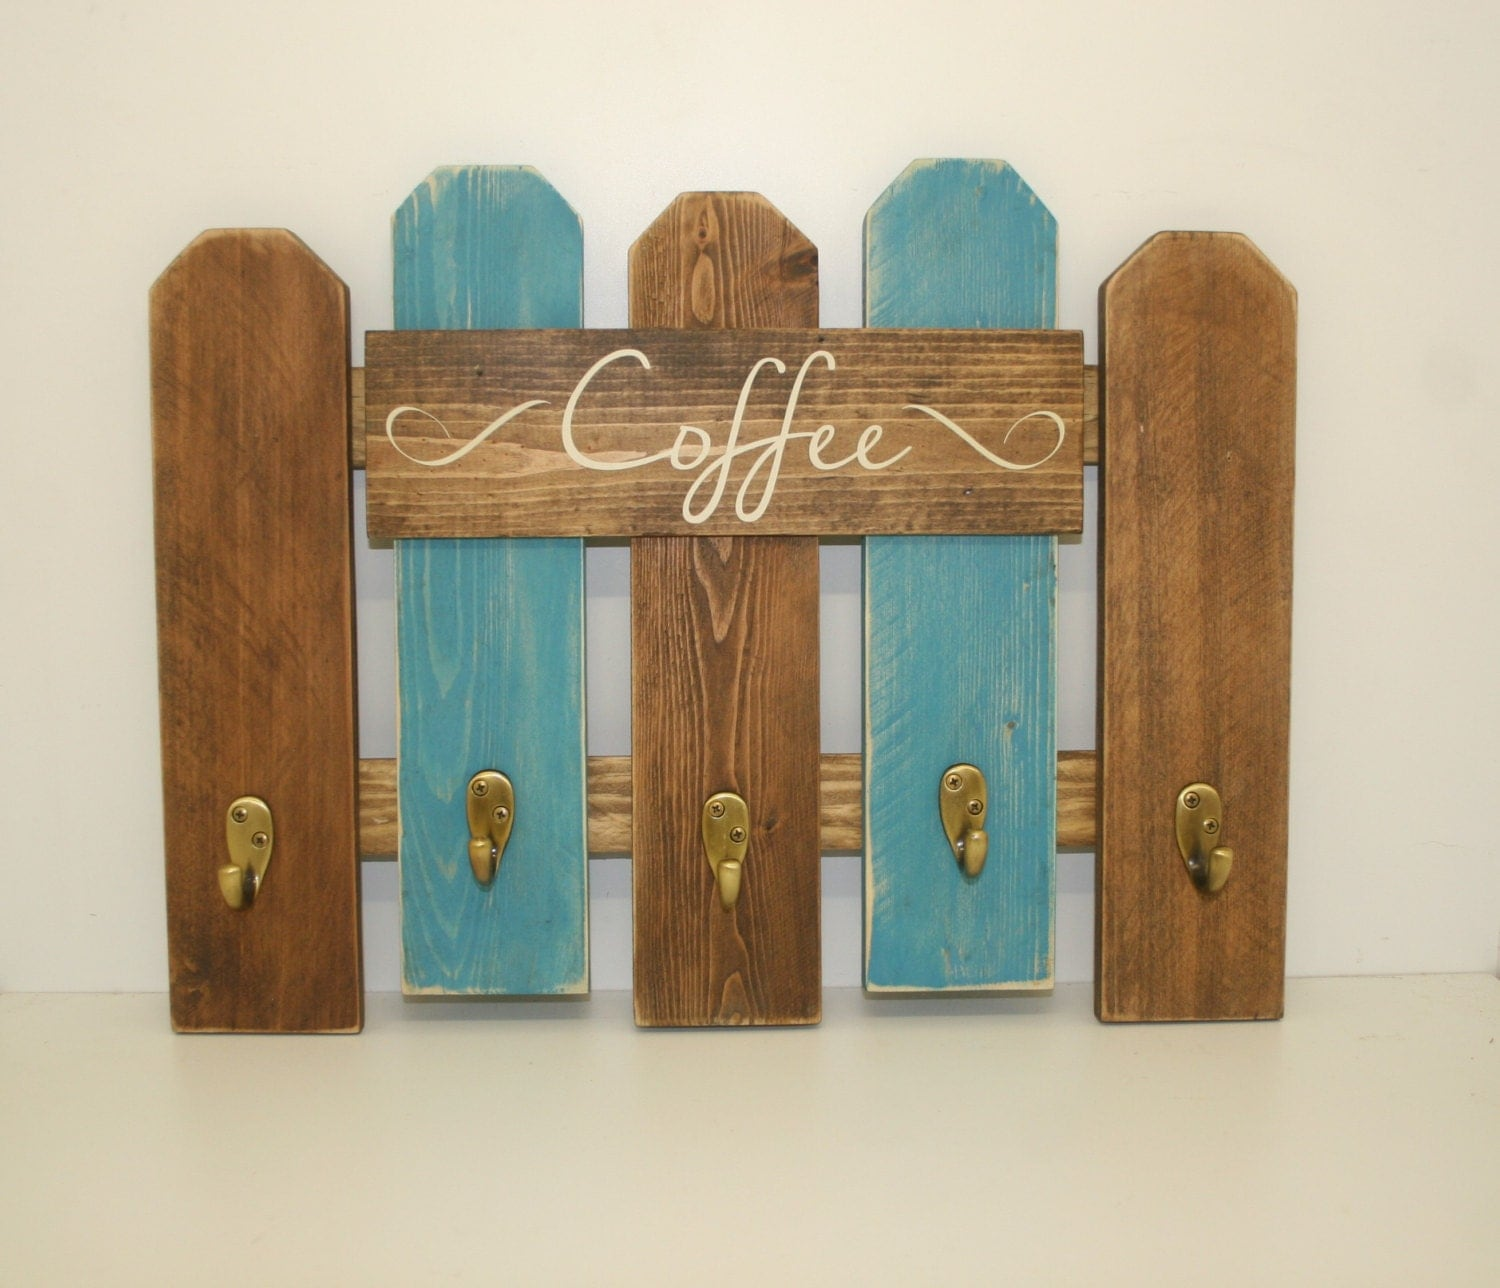 Cowboy Kitchen: Coffee Mug Rack Western Rustic Kitchen Decor Reclaimed